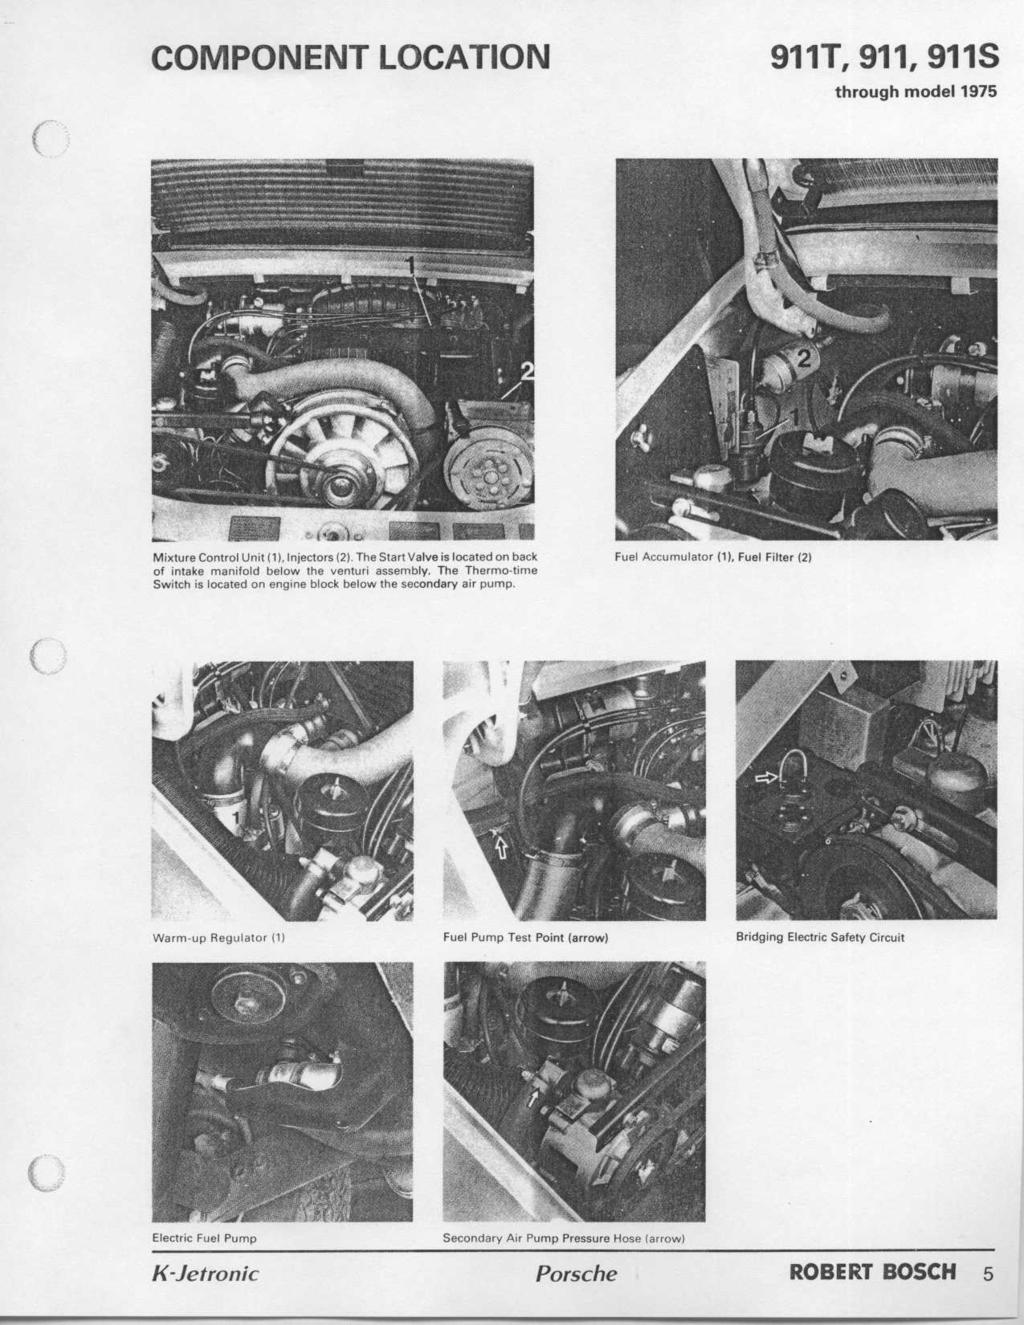 Workshop Manual Porsche K Jetronic Robert Bosch Pdf Vw Rabbit Gti Engines Further Fuel Pump Wiring Diagram On 1975 Beetle Component Location 911t 911911s Through Model Mixture Control Unit 1